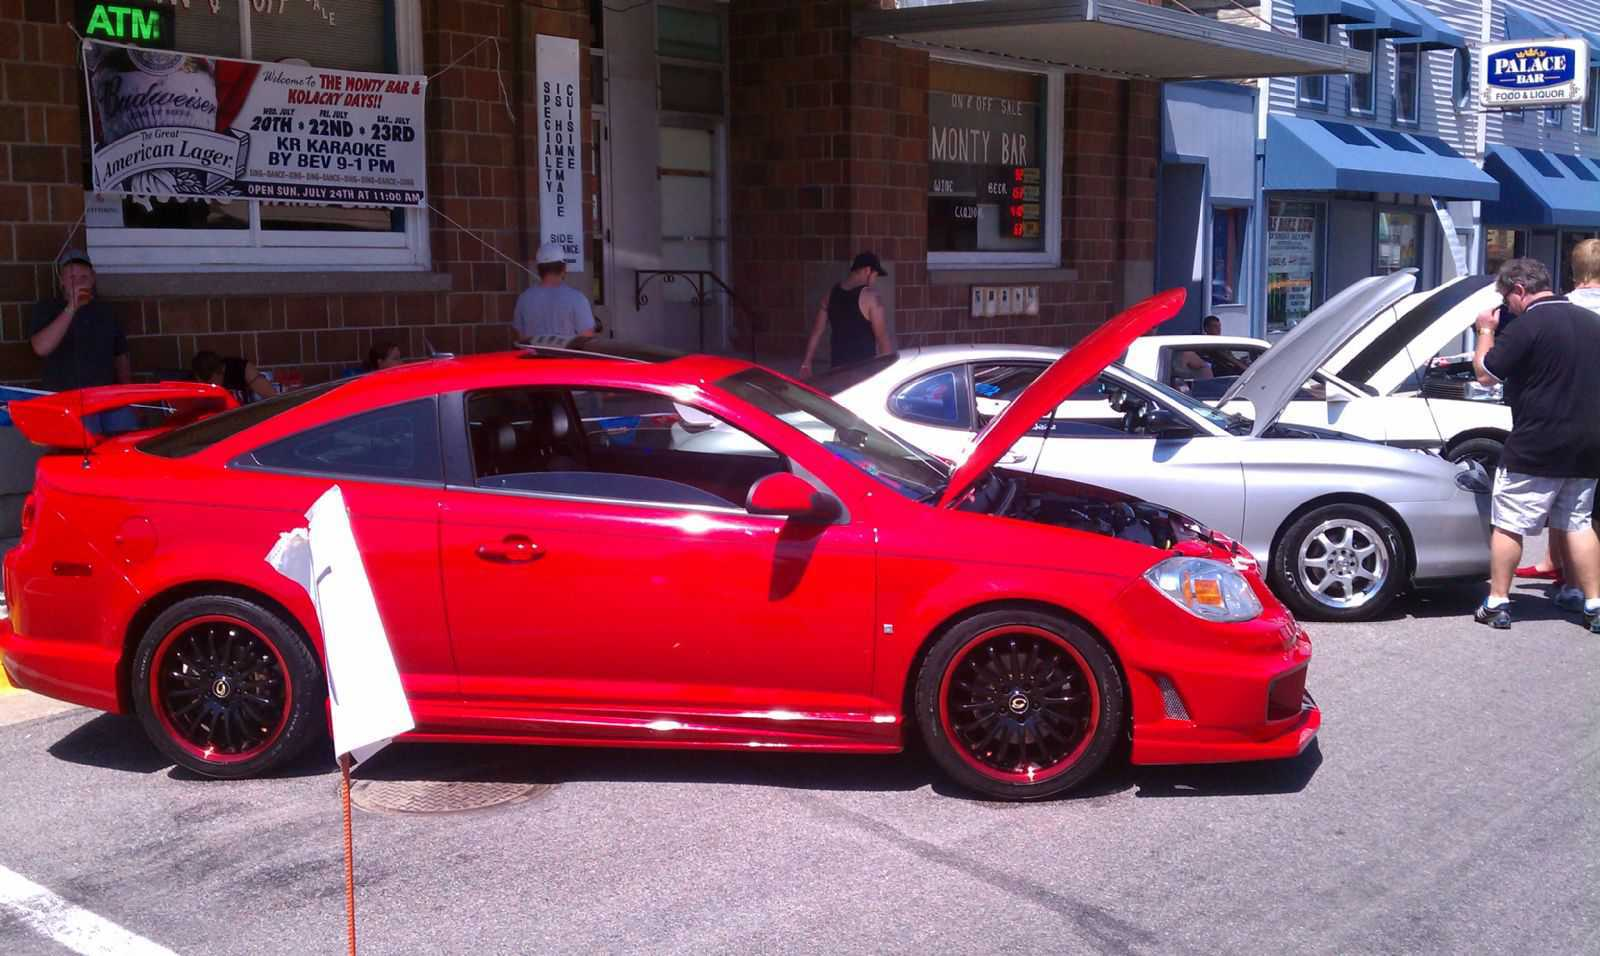 Chevrolet Bcobalt Bss Bconvertible Bmodified